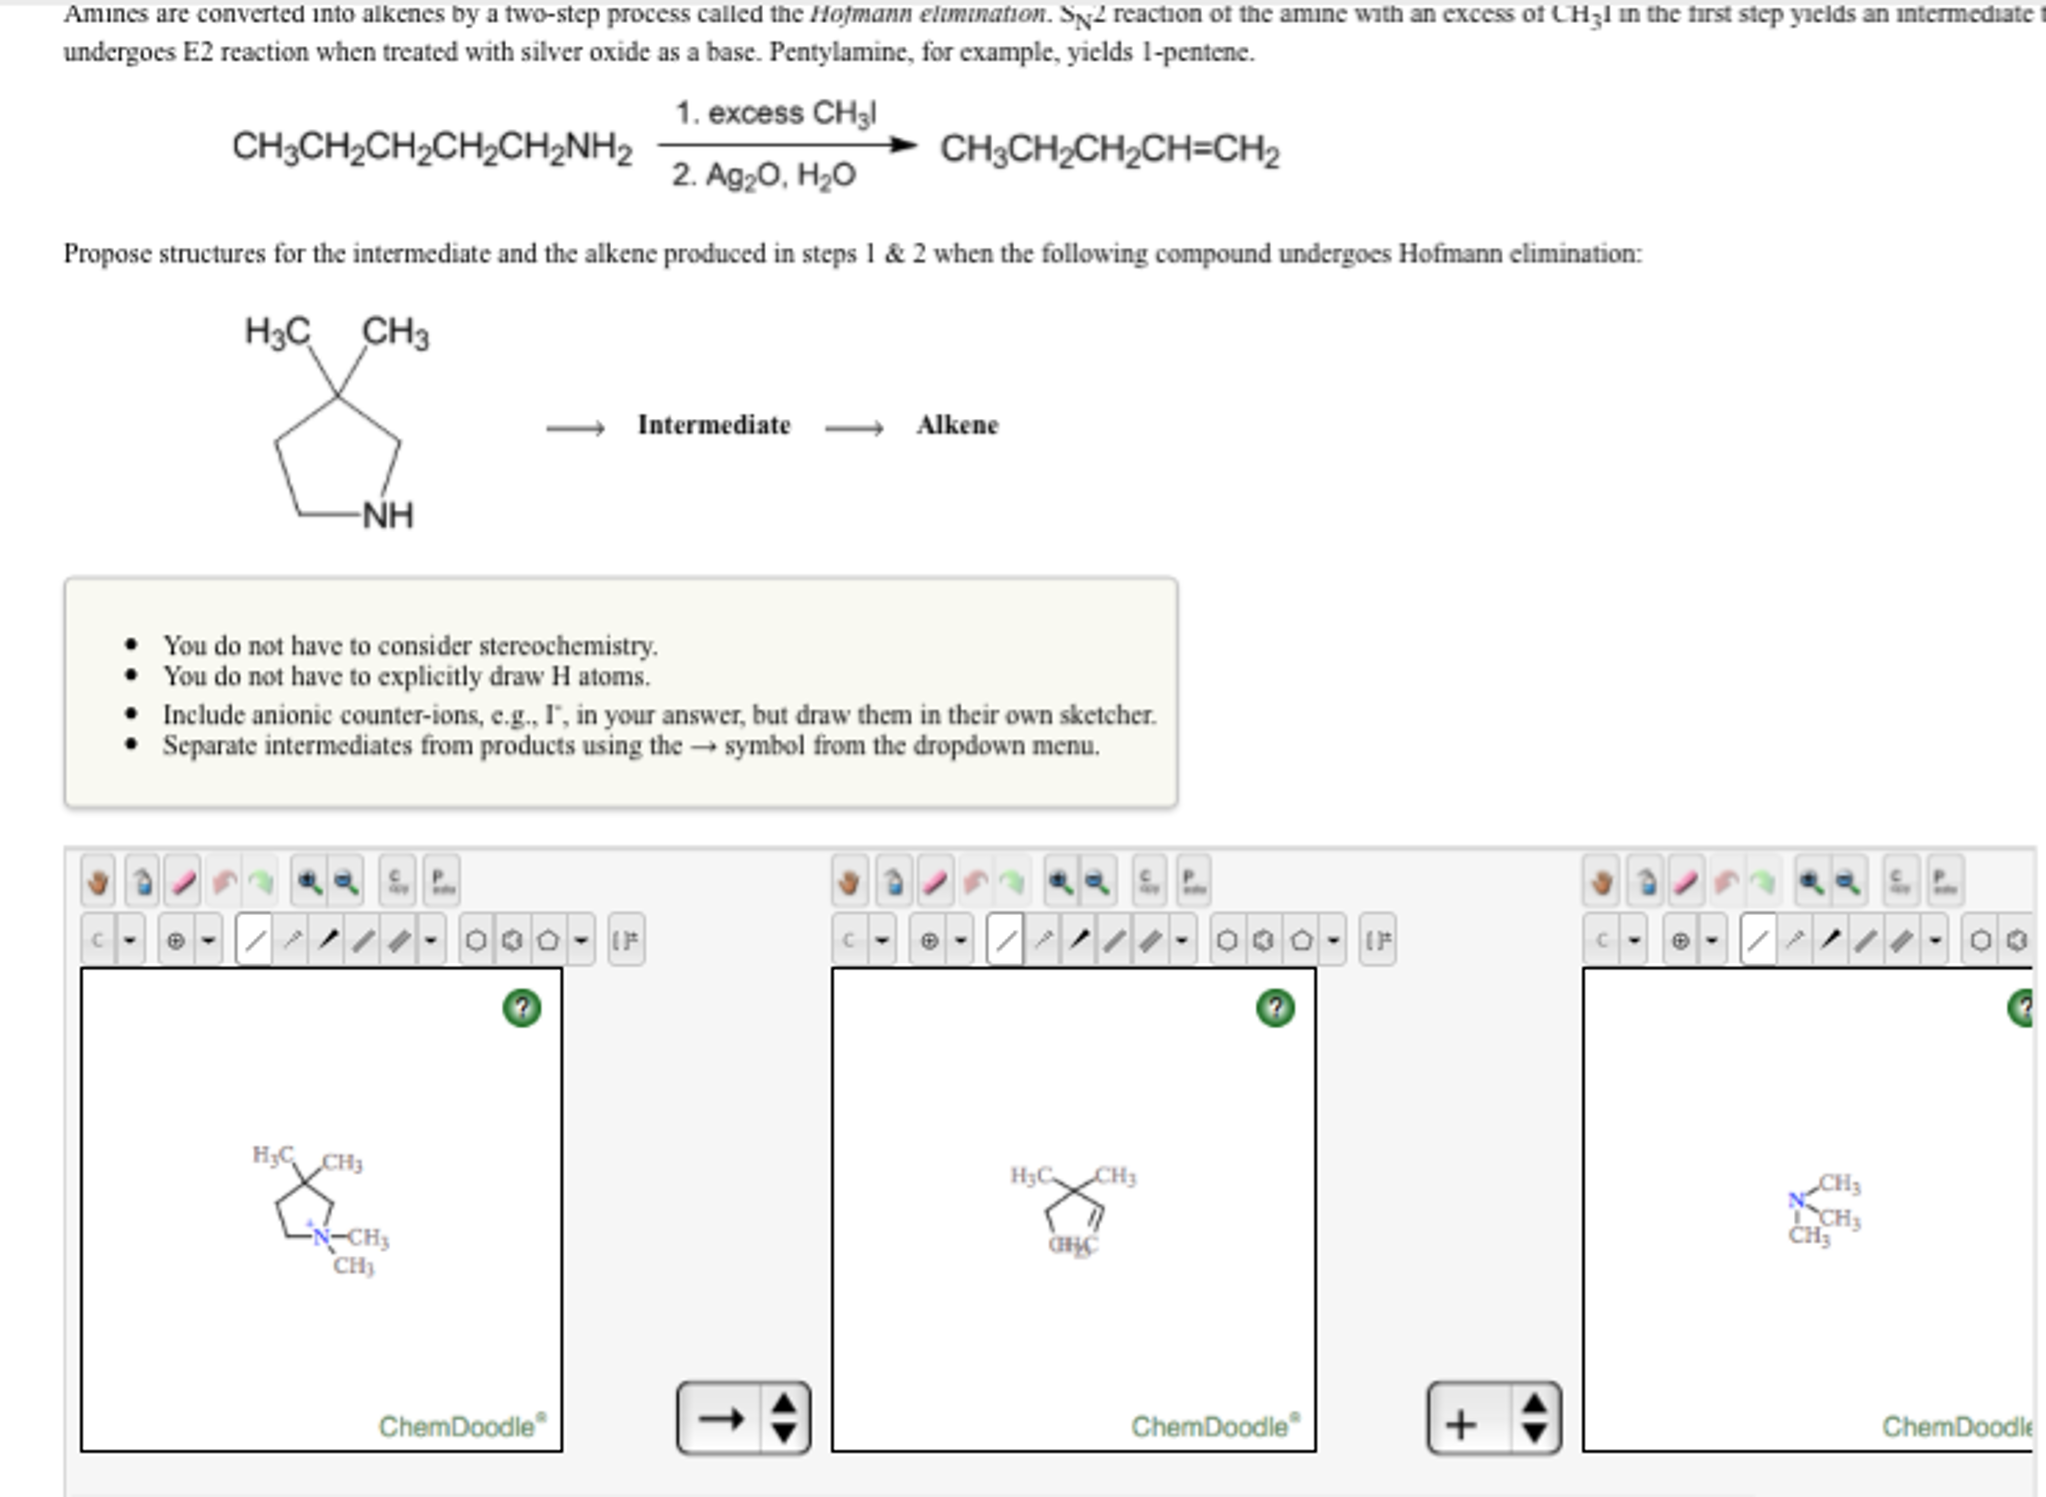 Solved: Amines Are Converted Into Alkenes By A Two-step Pr